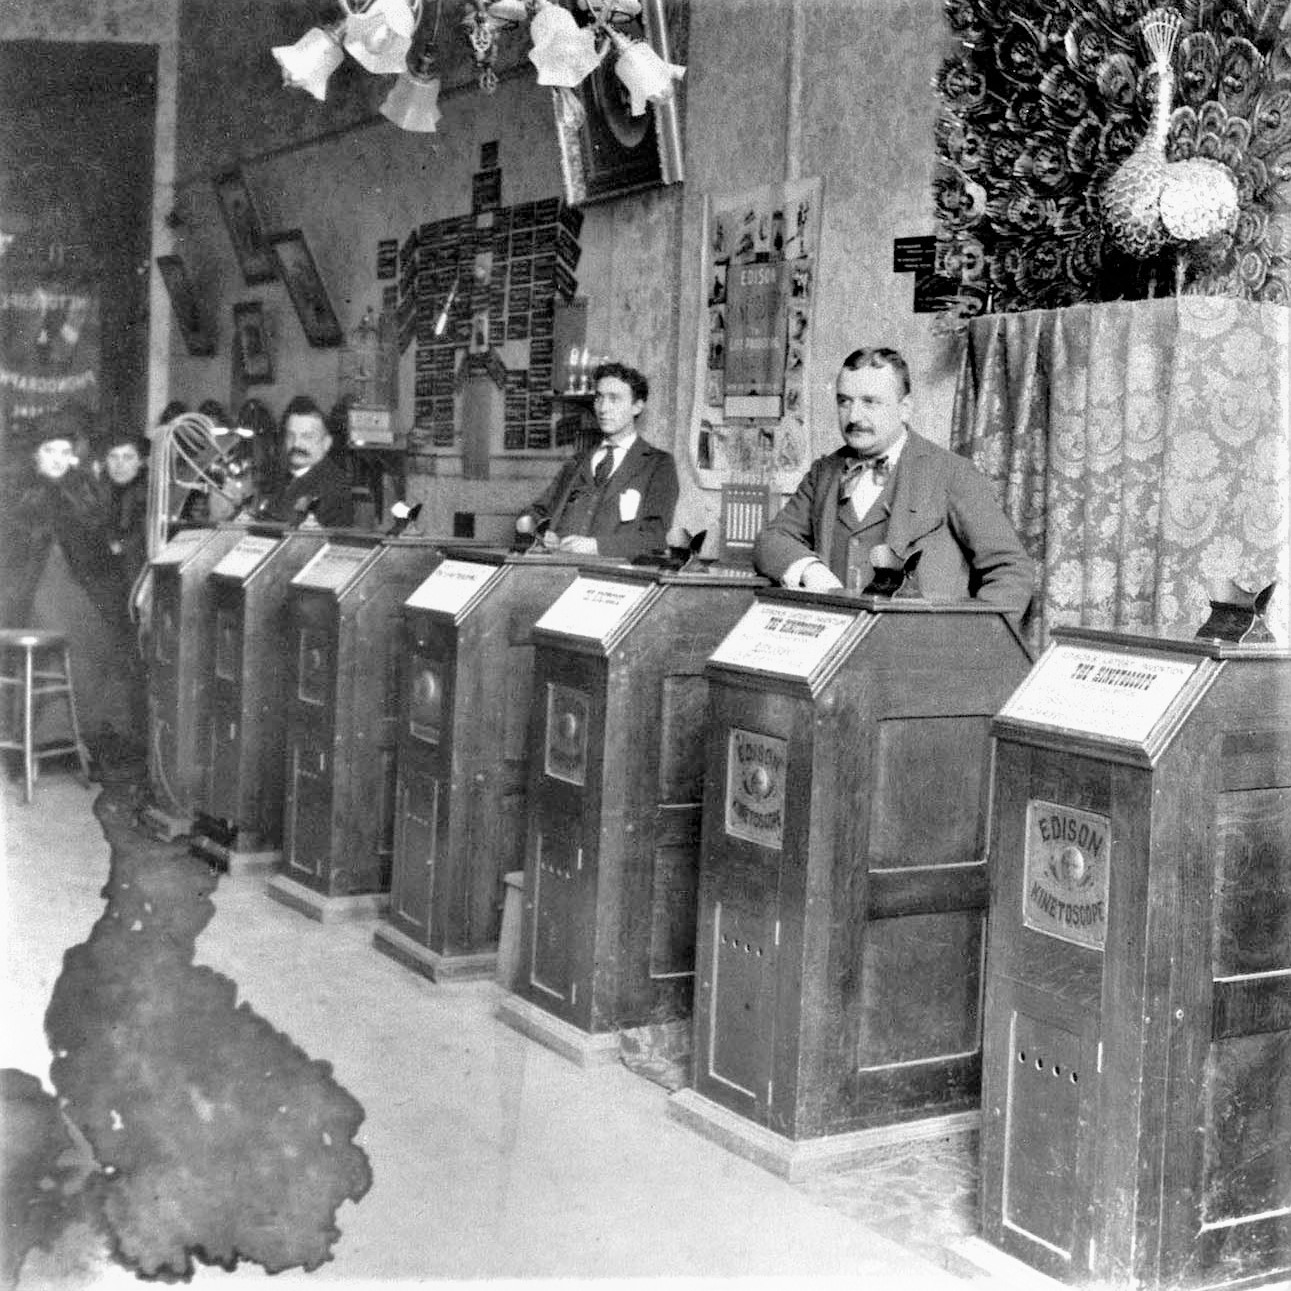 Kinetoscope parlour in Chicago